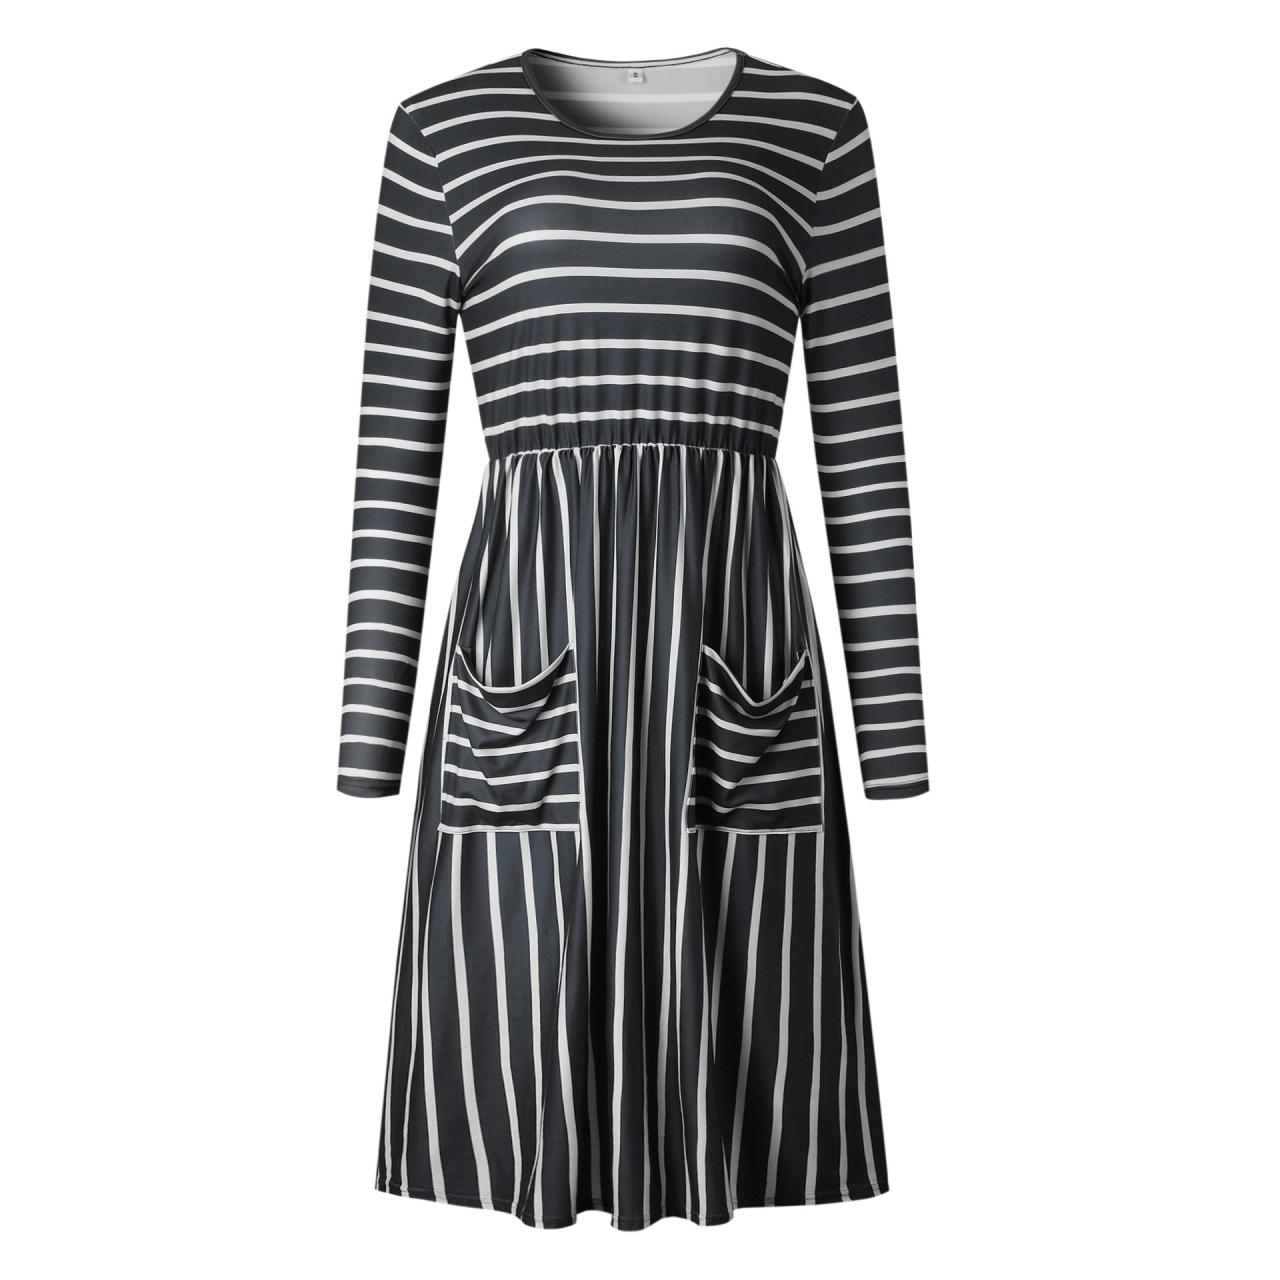 Women Casual Dress Autumn Long Sleeve Pocket Tie Streetwear Loose Striped/Floral Printed Midi Party Dress 100086-black